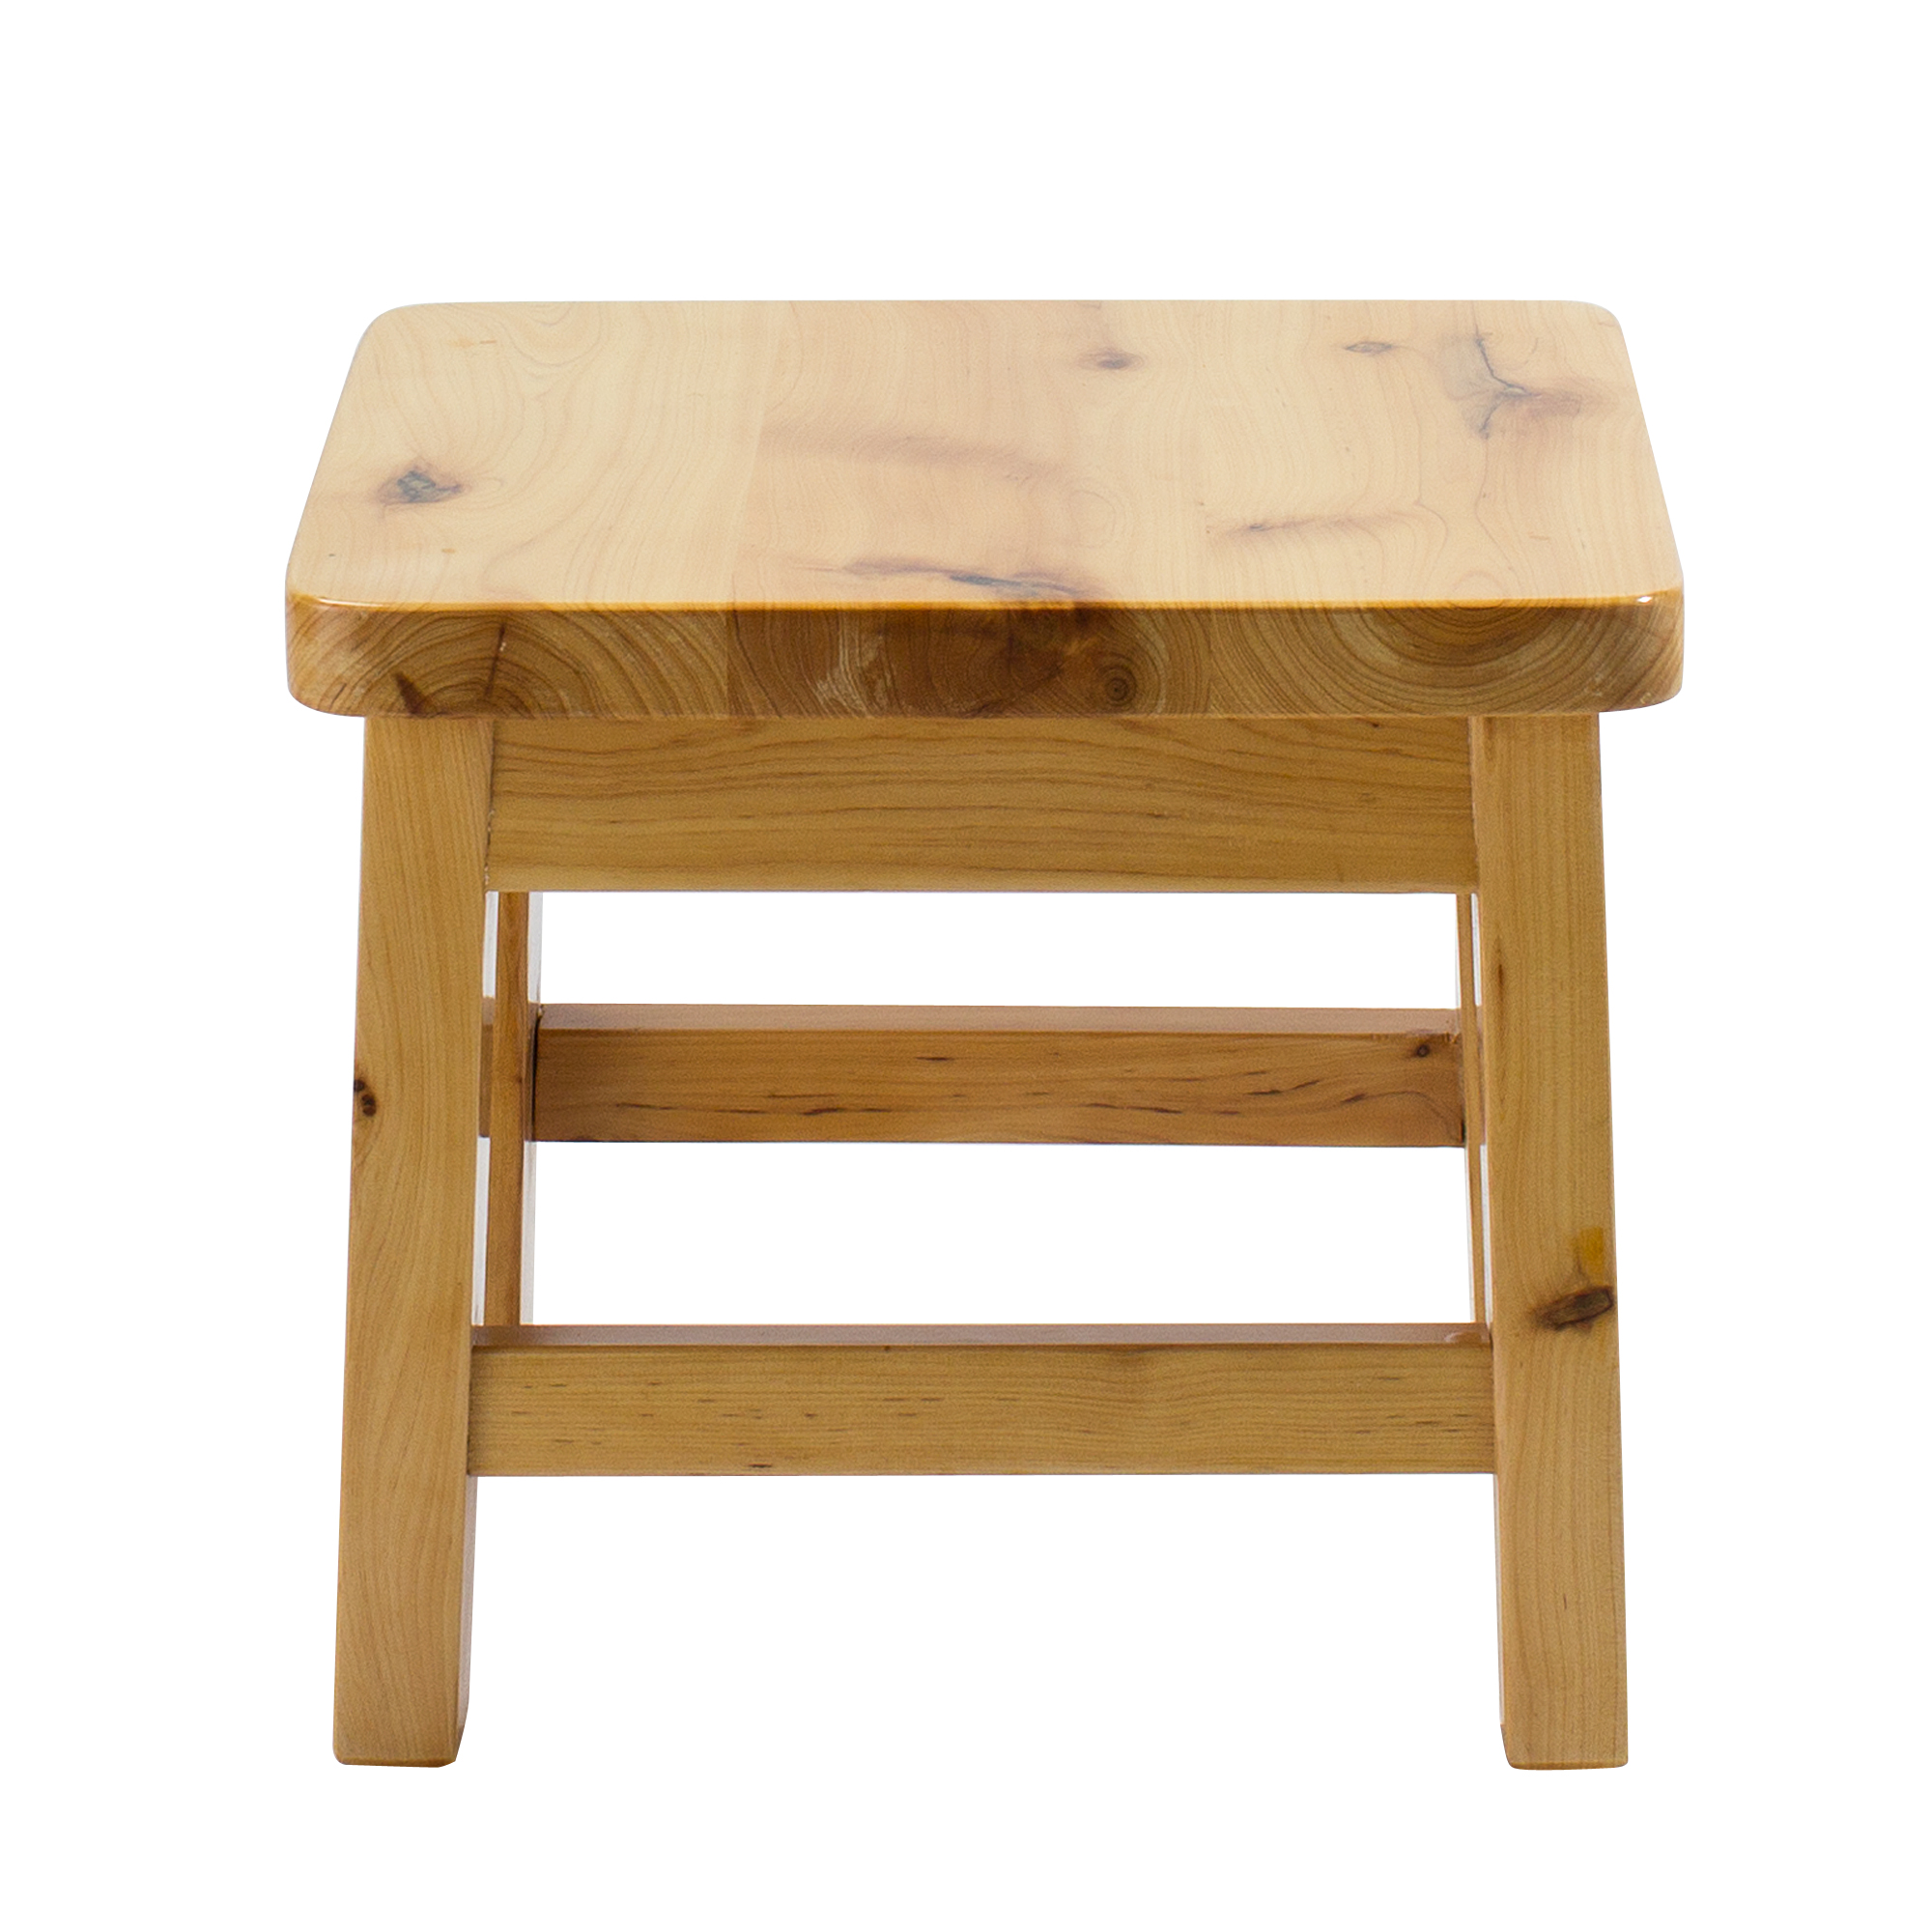 Pleasant Frisby Hardwood Birch Footstool Water Resistant Multipurpose Durable Sturdy Non Slip Surface Wooden Square Step Stool For Adults Children Indoor Spiritservingveterans Wood Chair Design Ideas Spiritservingveteransorg